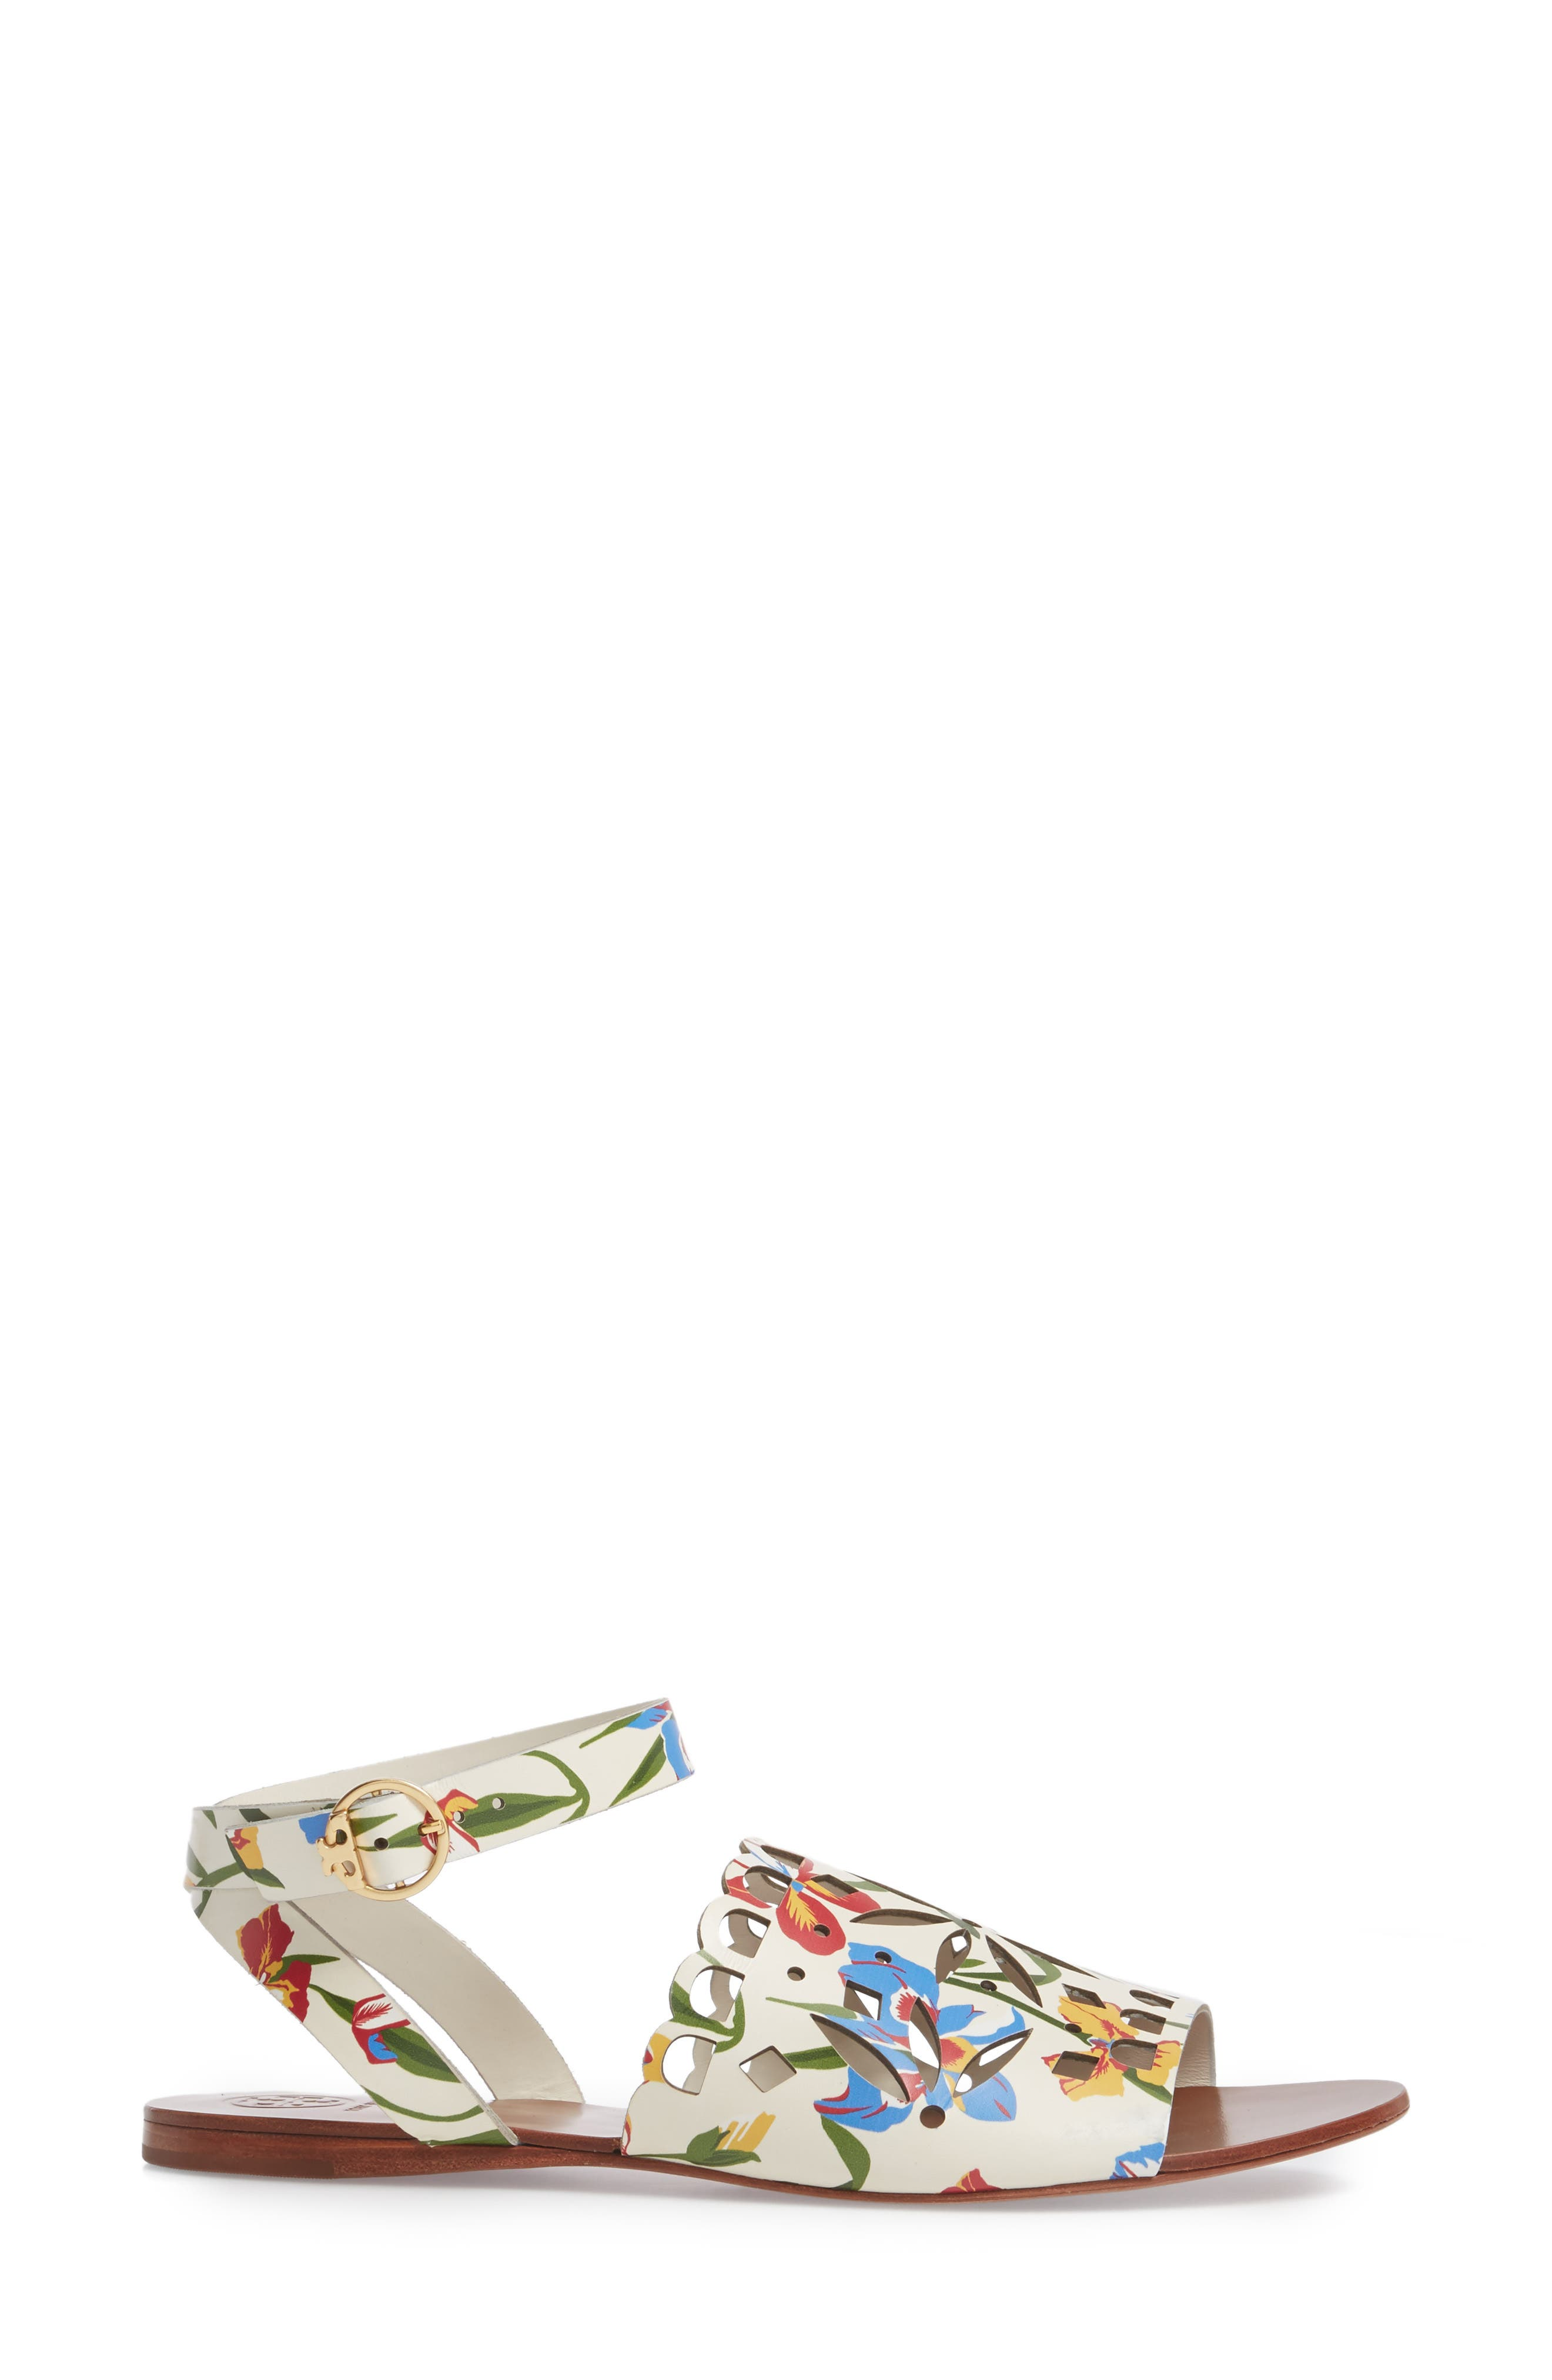 May Printed Floral Ankle Strap Sandal,                             Alternate thumbnail 3, color,                             Painted Iris